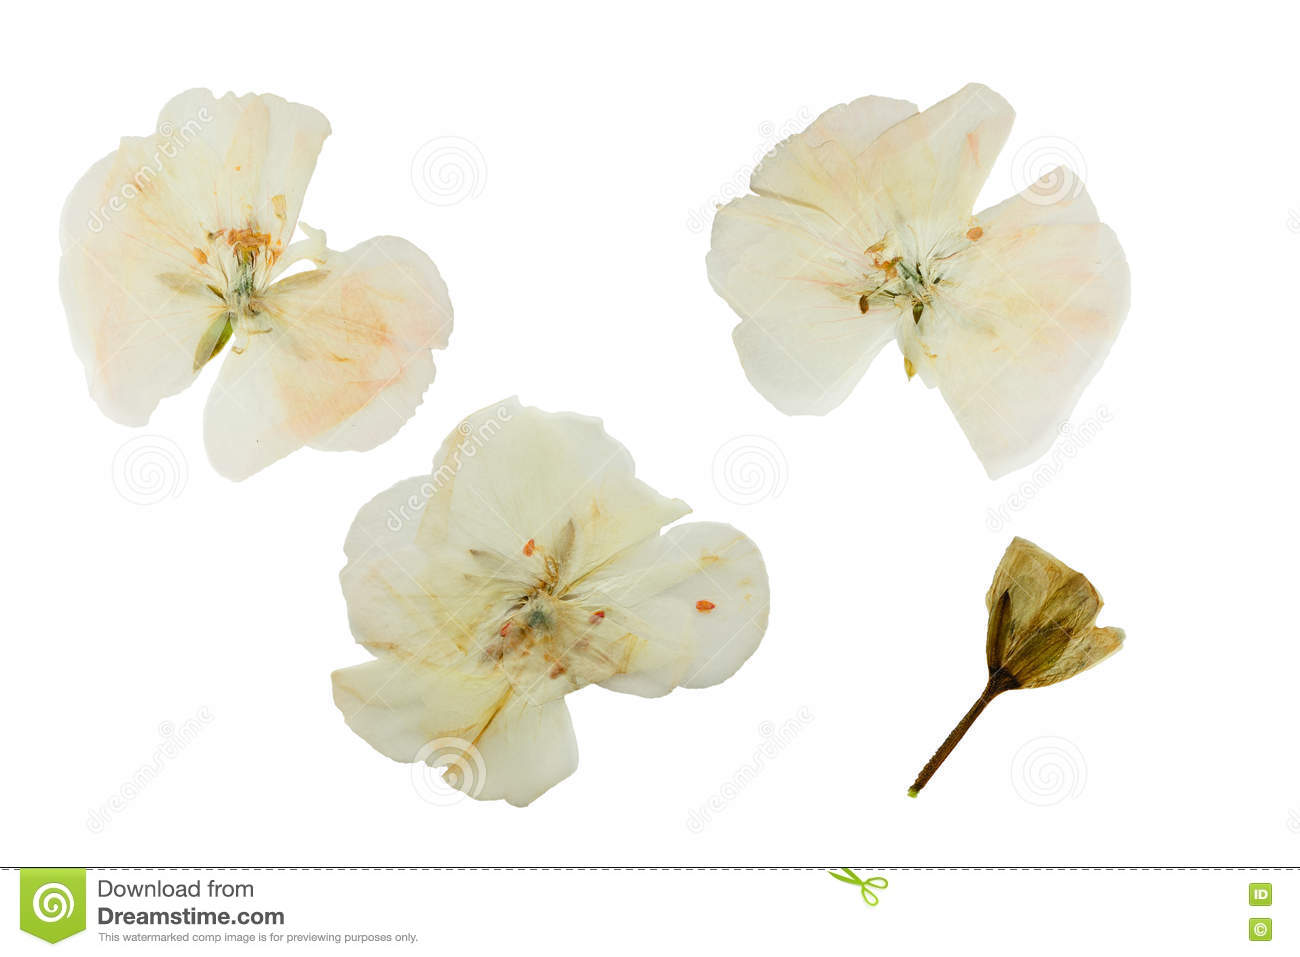 How to scrapbook dried flowers - Pressed And Dried Delicate Transparent Flowers Geranium